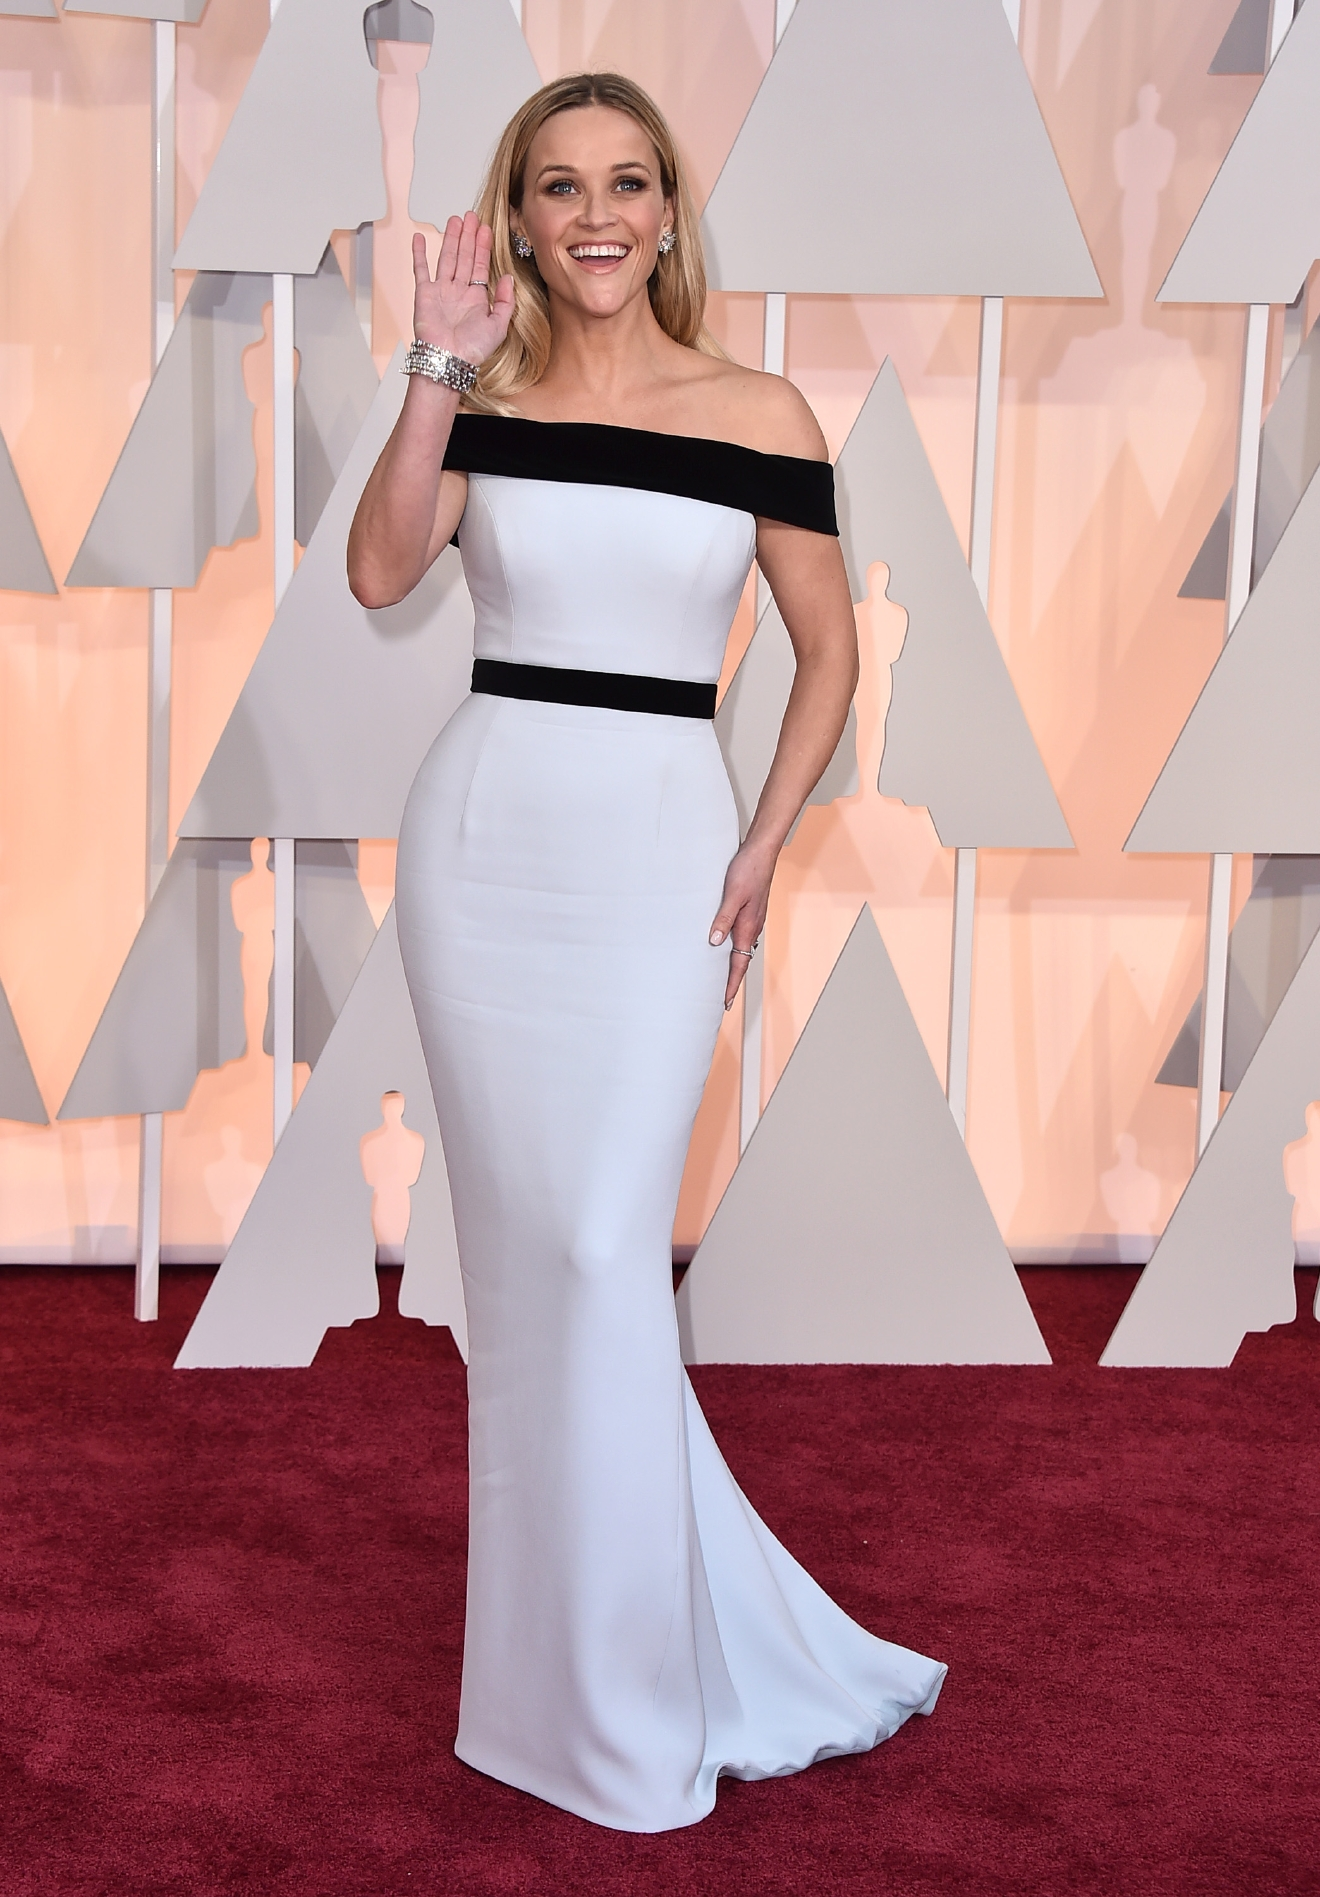 Reese Witherspoon attends the Academy Awards ceremony in Los Angeles on Feb. 22, 2015. (Photo credit: Jordan Strauss/Invision/AP.)